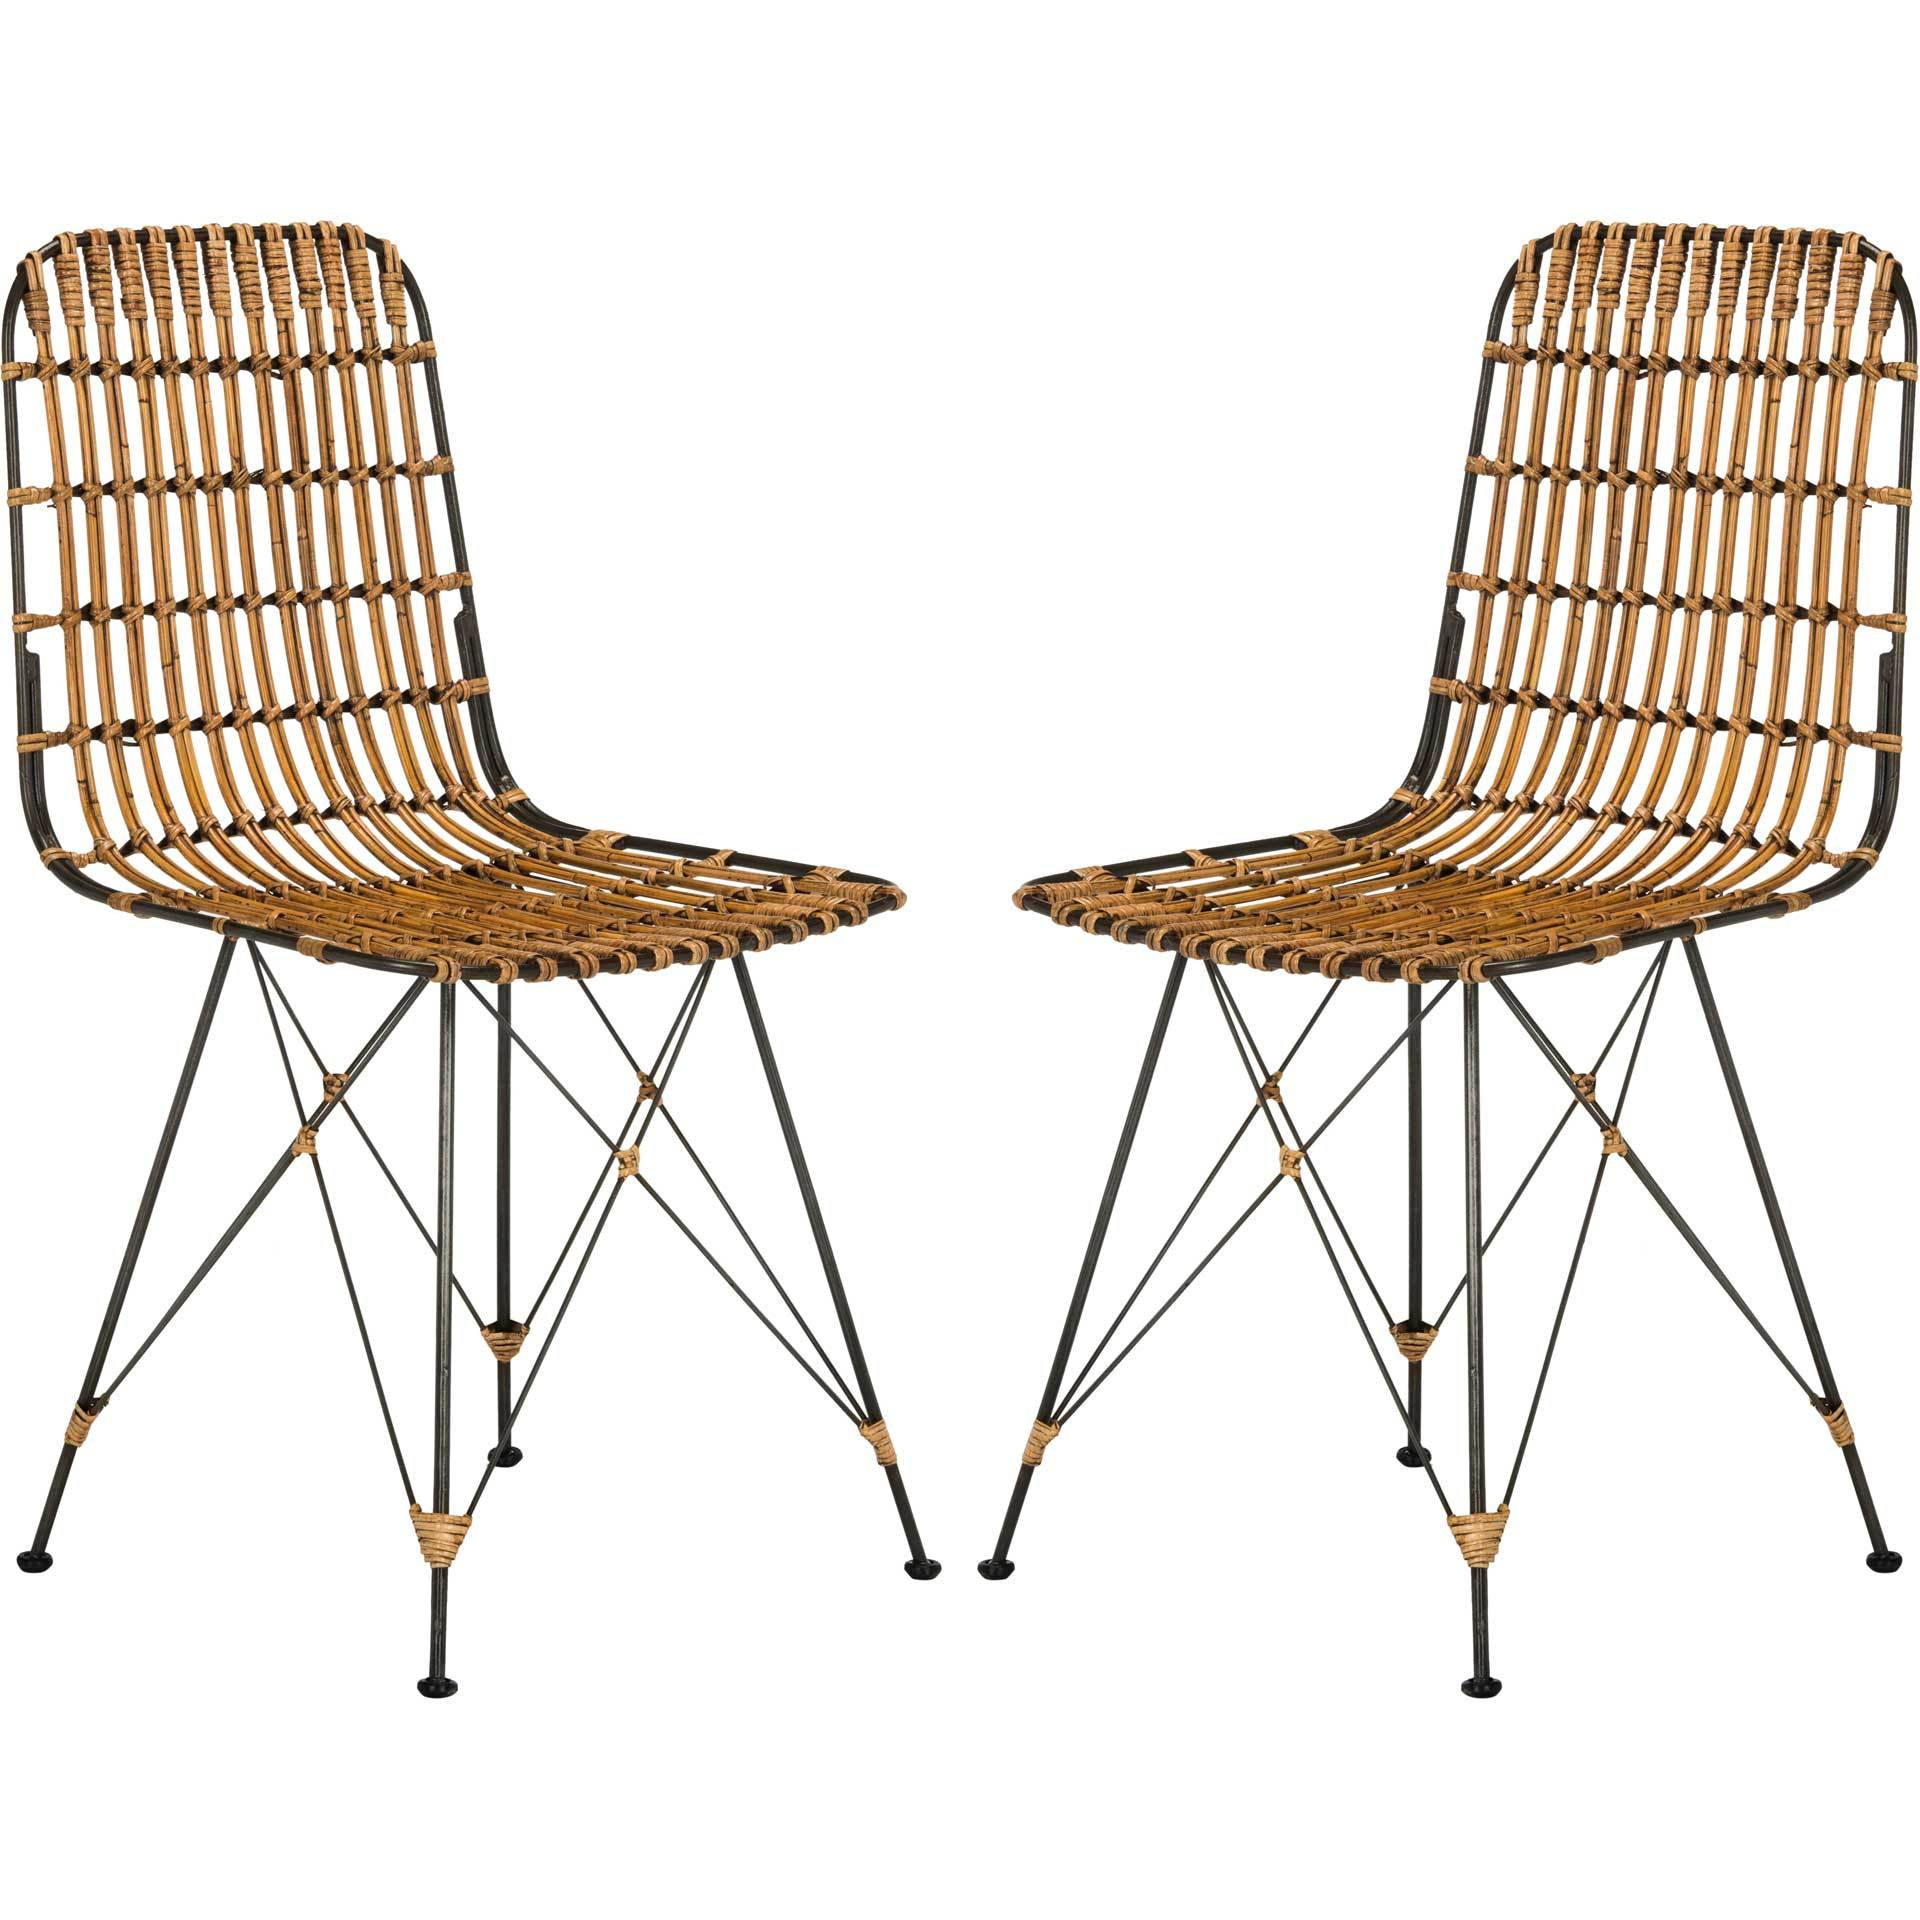 Millie Wicker Dining Chair Natural Brown Wash (Set of 2)